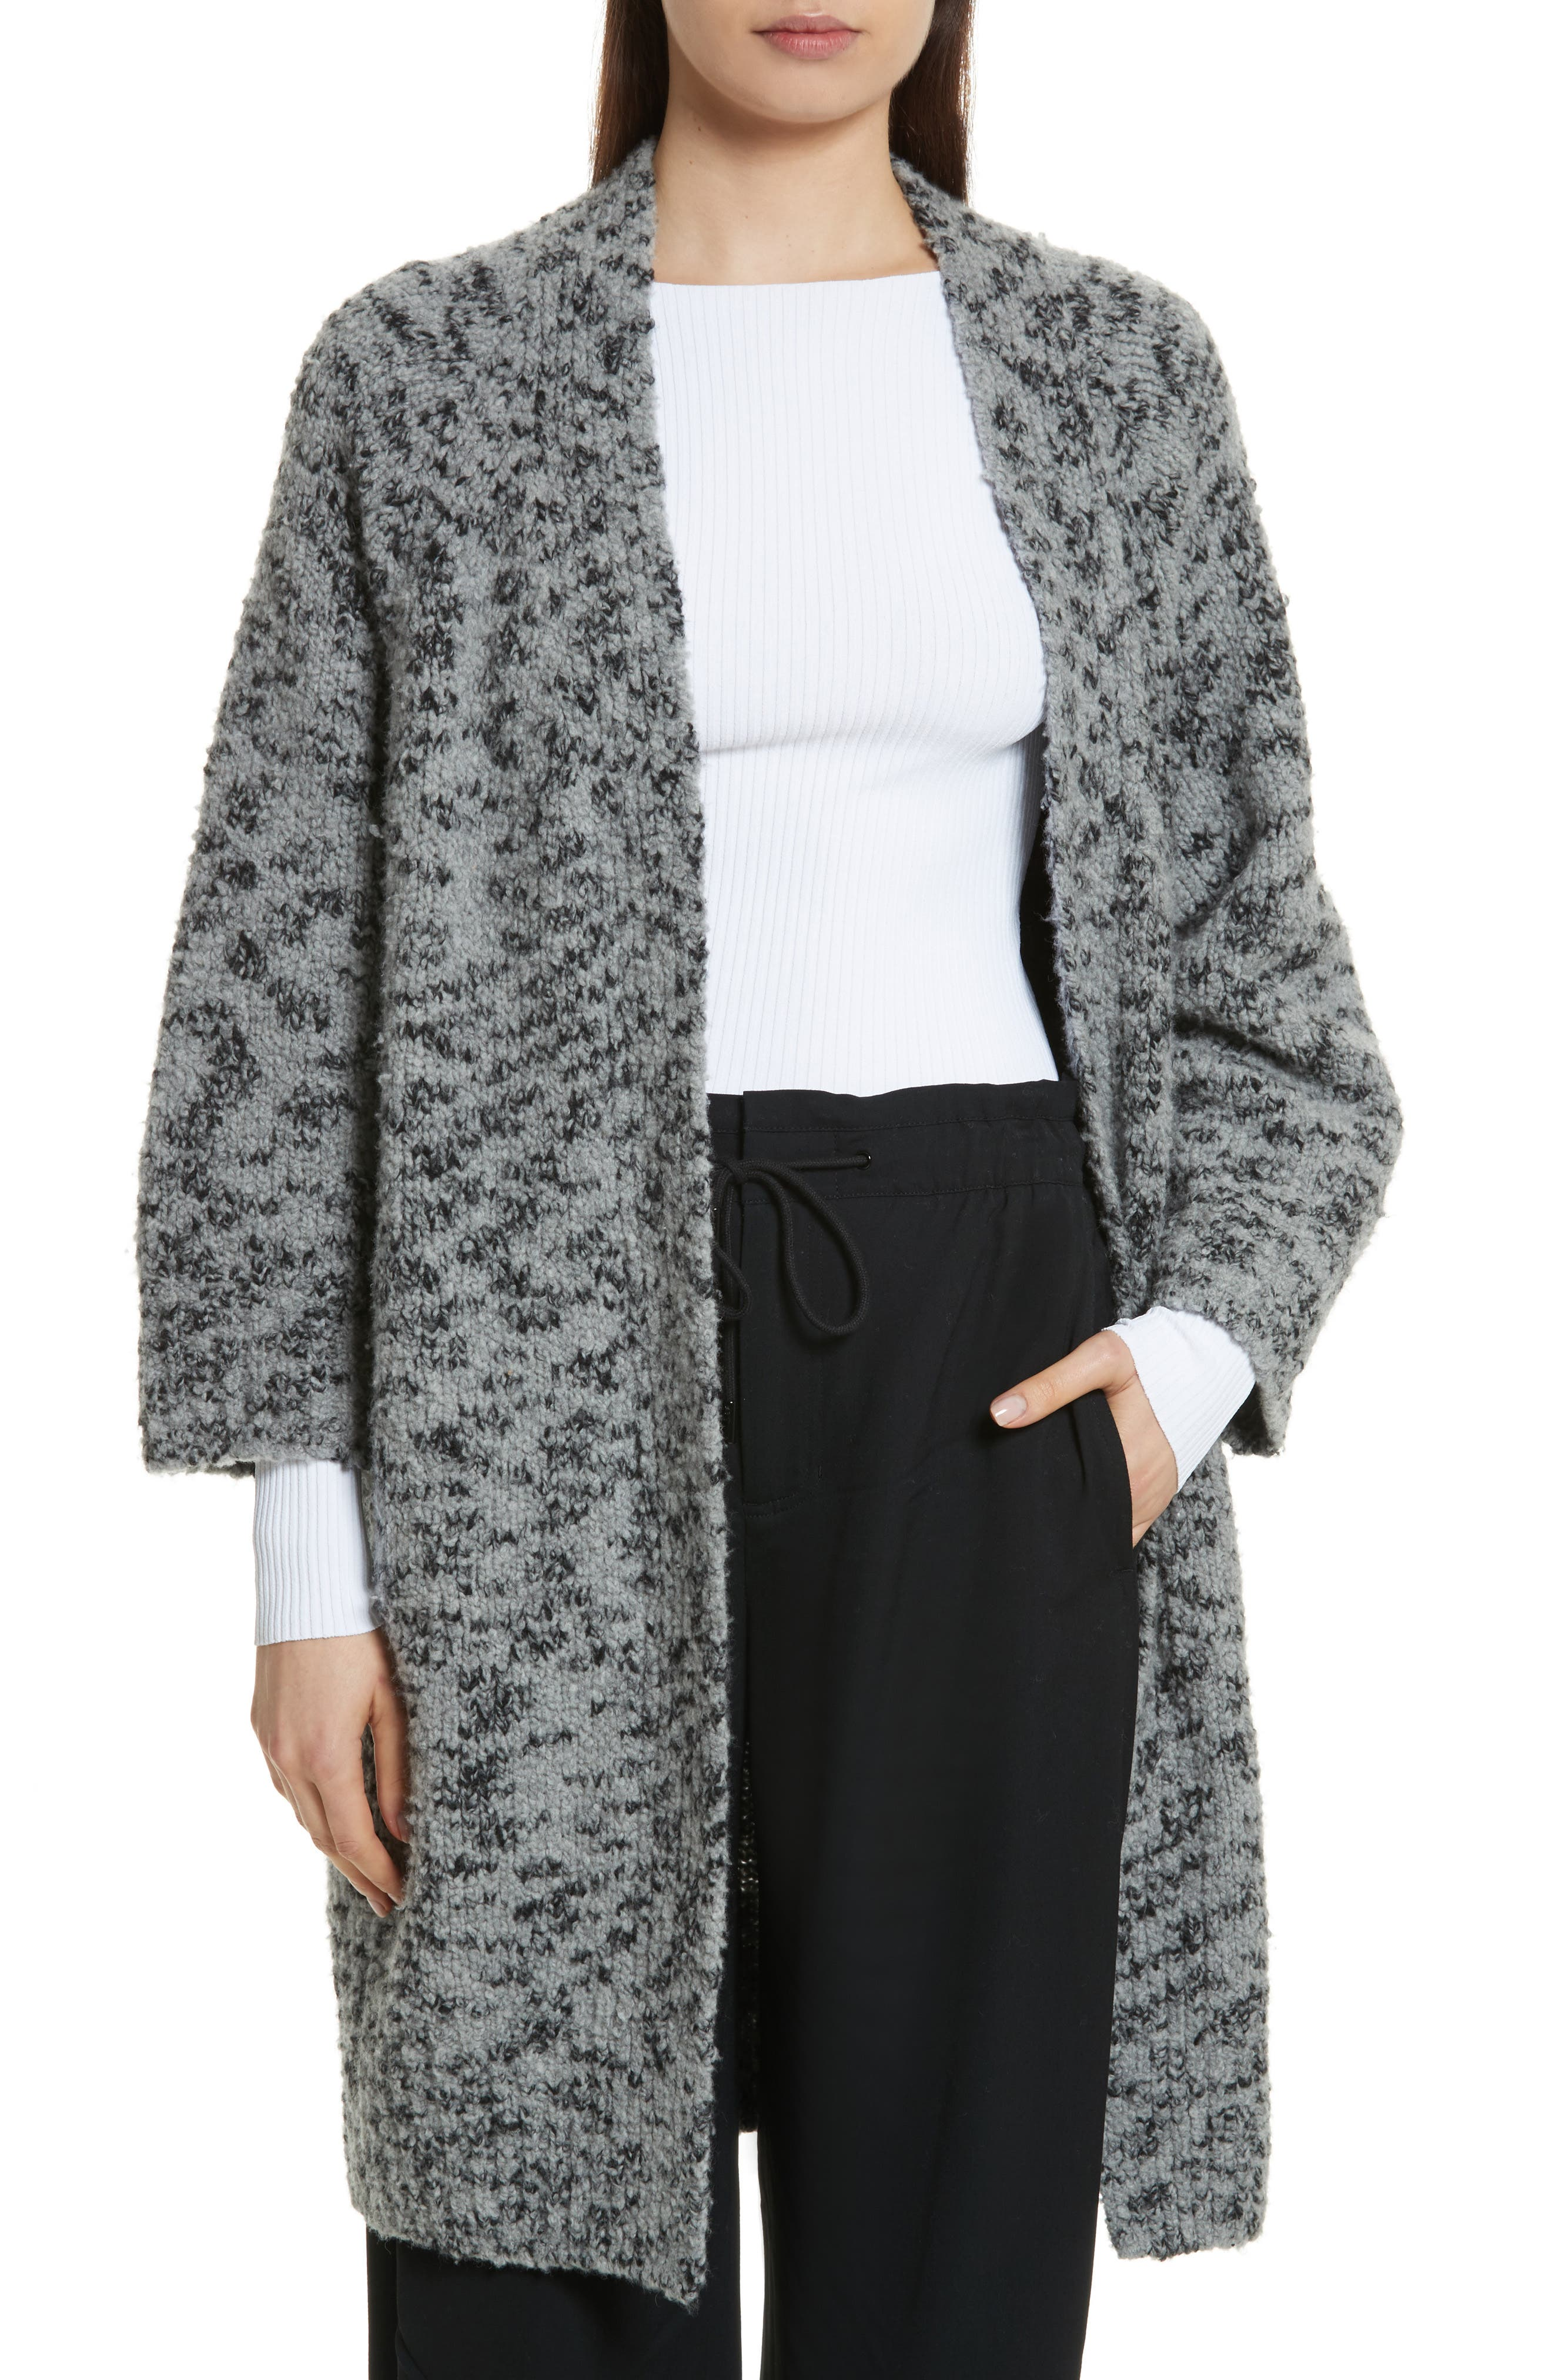 Textured Wool Blend Cardigan,                             Main thumbnail 1, color,                             Grey/ Black